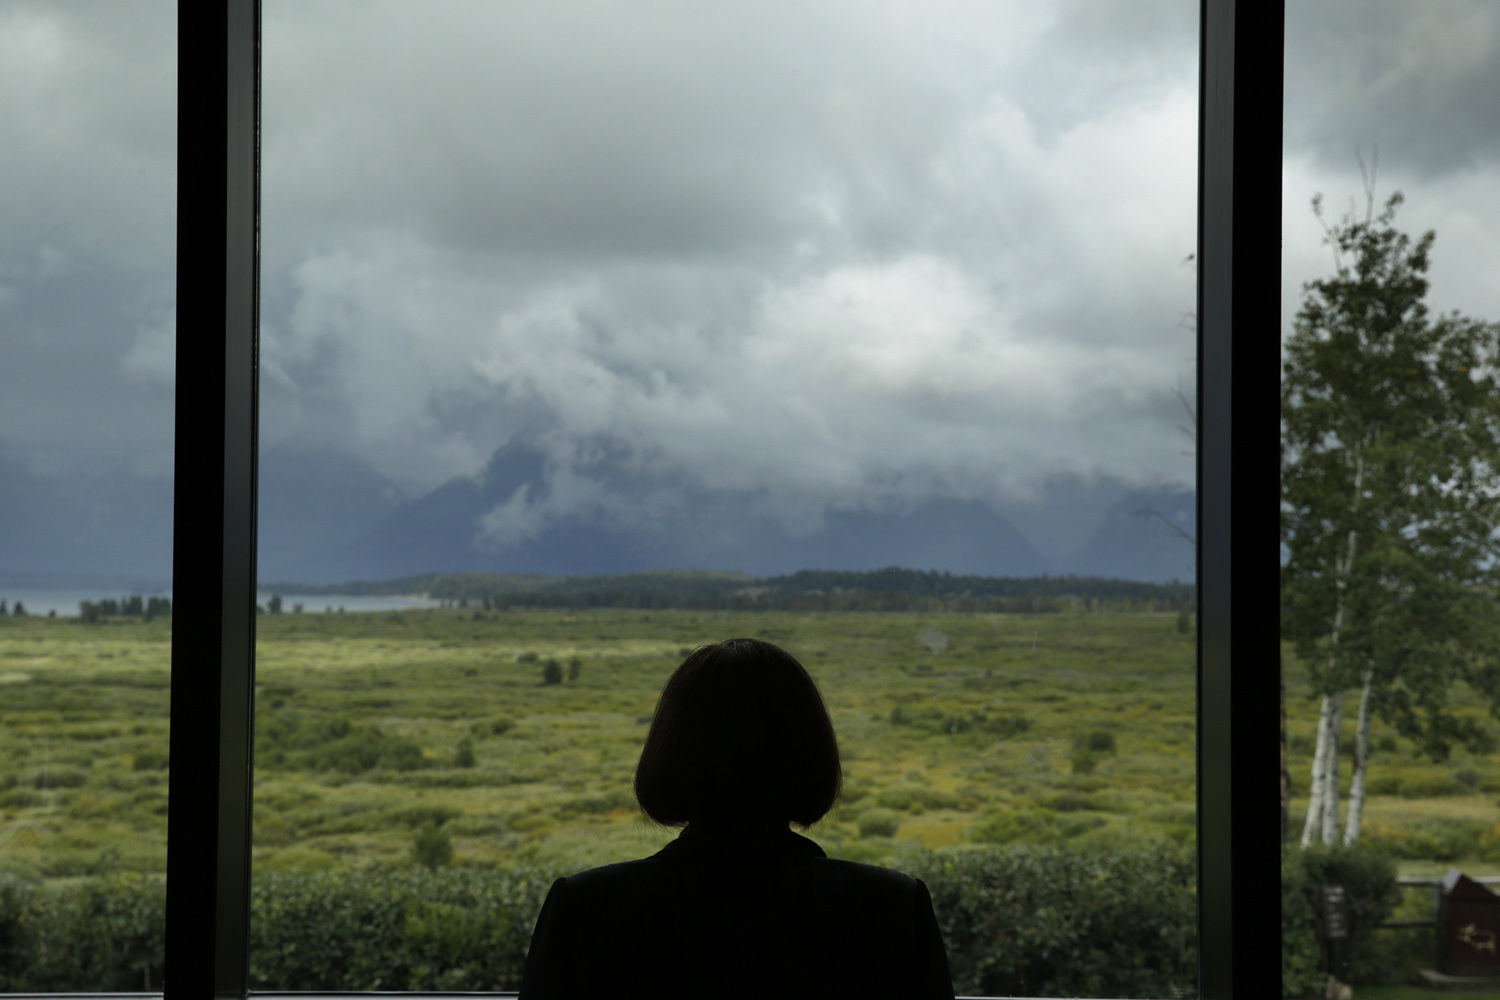 Aug. 23, 2014. Jill Vardy, of the Bank of Canada, looks out at the Teton Range during a break at the Jackson Hole Economic Policy Symposium at the Jackson Lake Lodge in Grand Teton National Park near Jackson, Wyo.